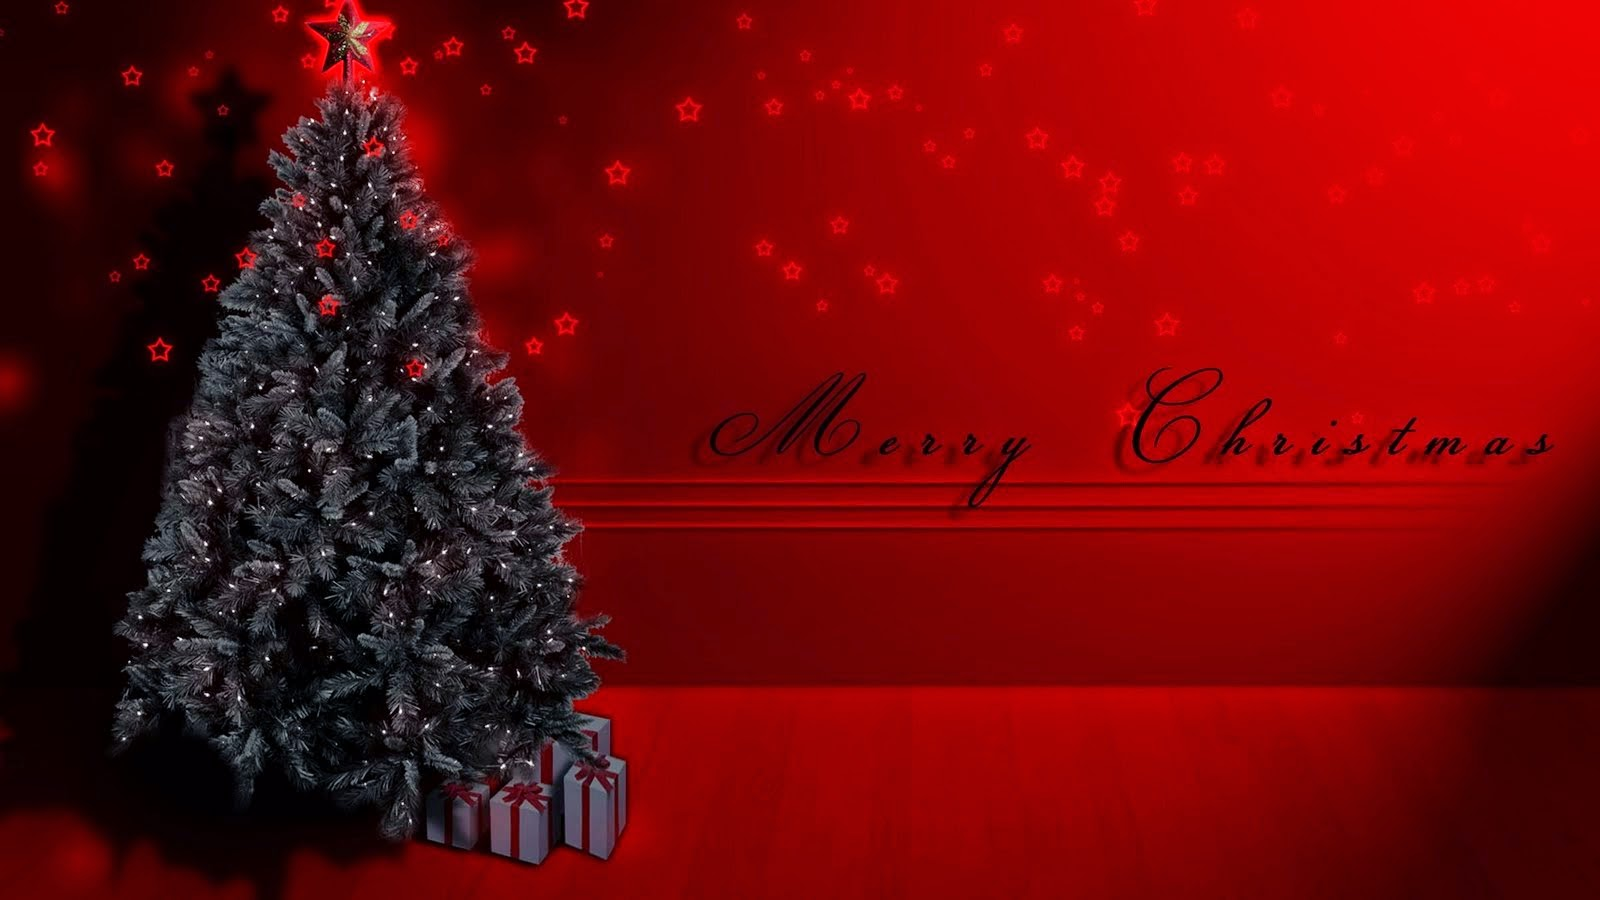 Christmas greeting cards and christmas cards download happy wishes birthday wishes greetings kristyandbryce Image collections